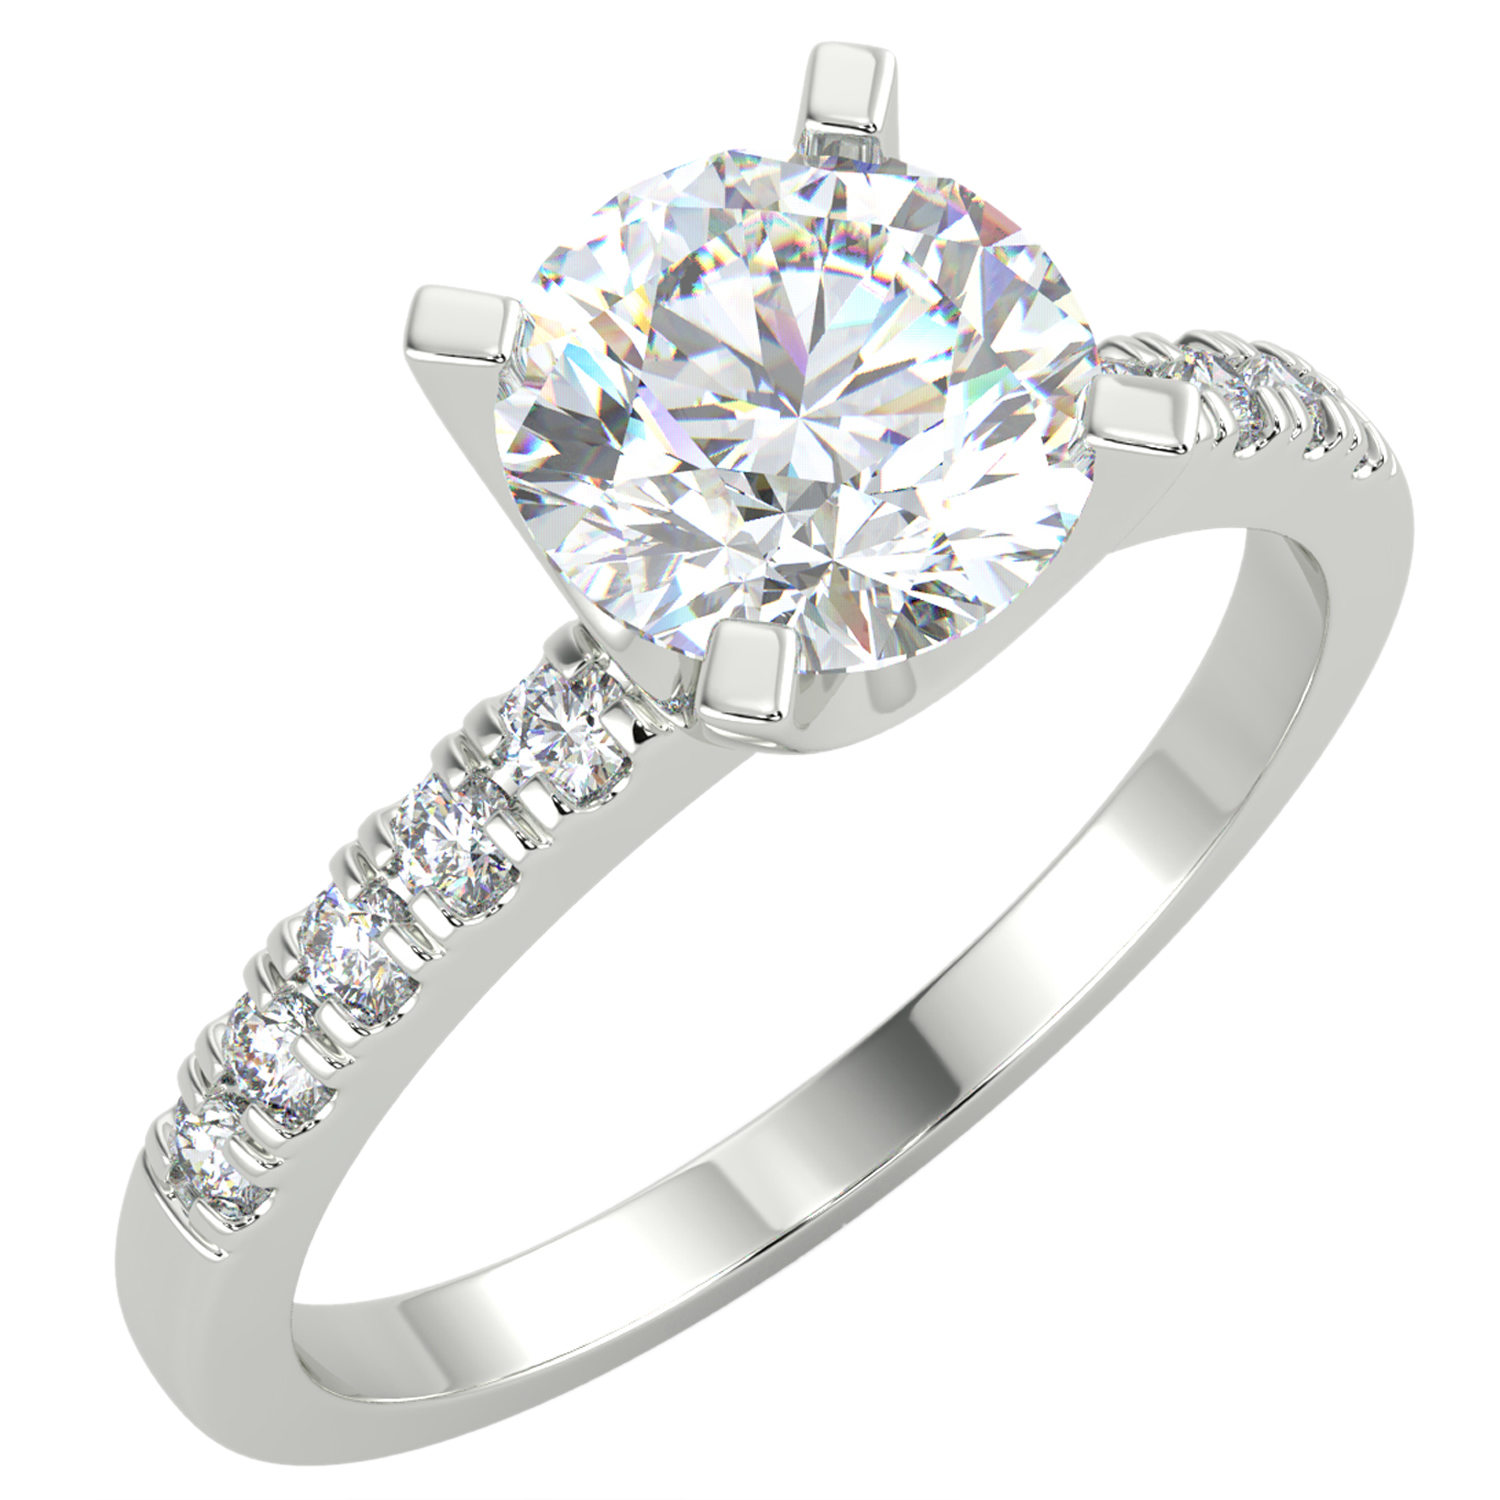 5549202f97d96 1.15 Ct Round Cut VS1/G Solitaire Pave Diamond Engagement Ring 14K ...